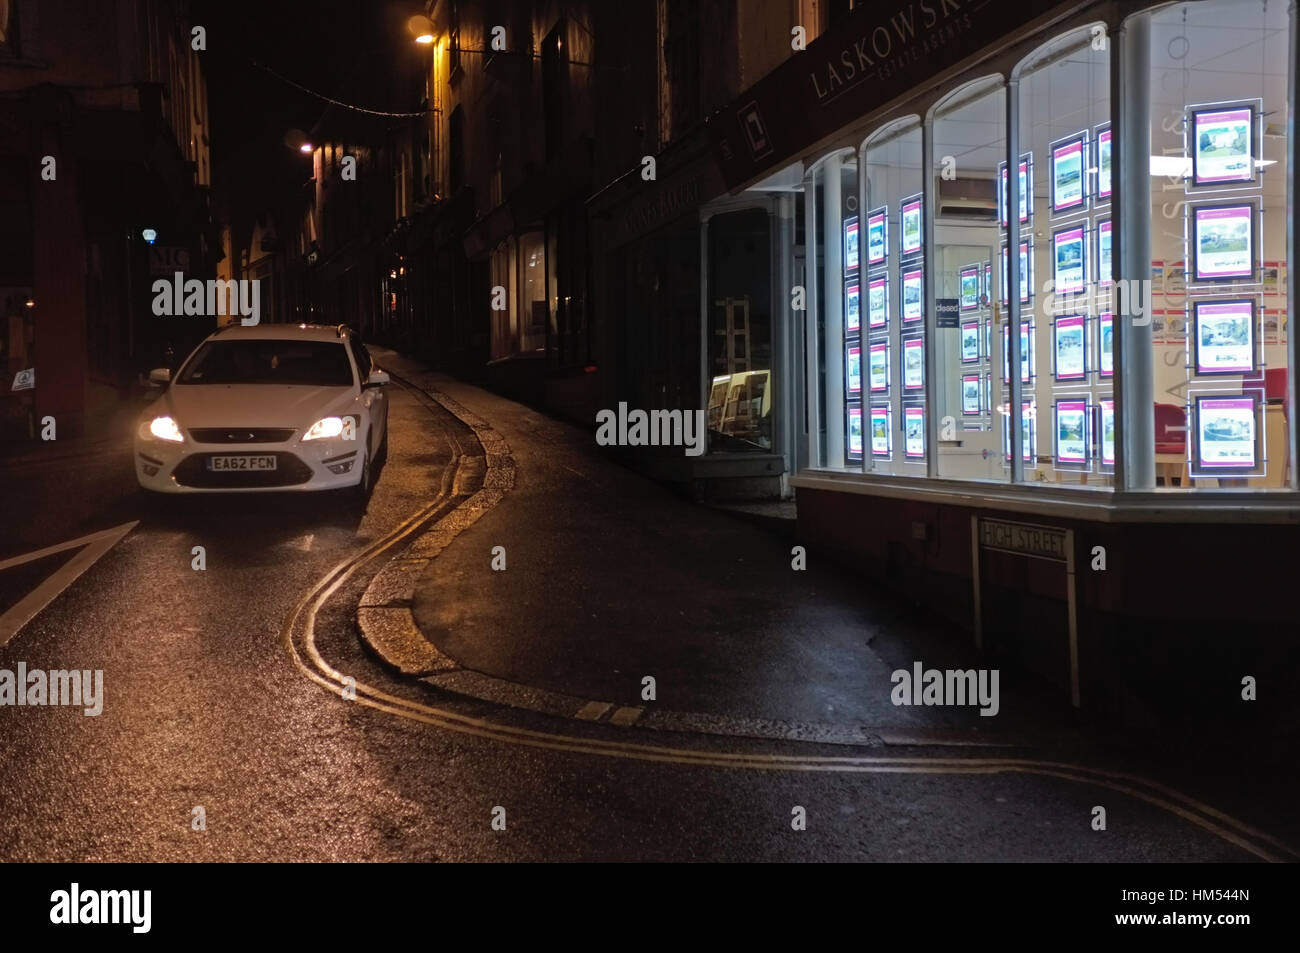 Property rental office at night. Stock Photo